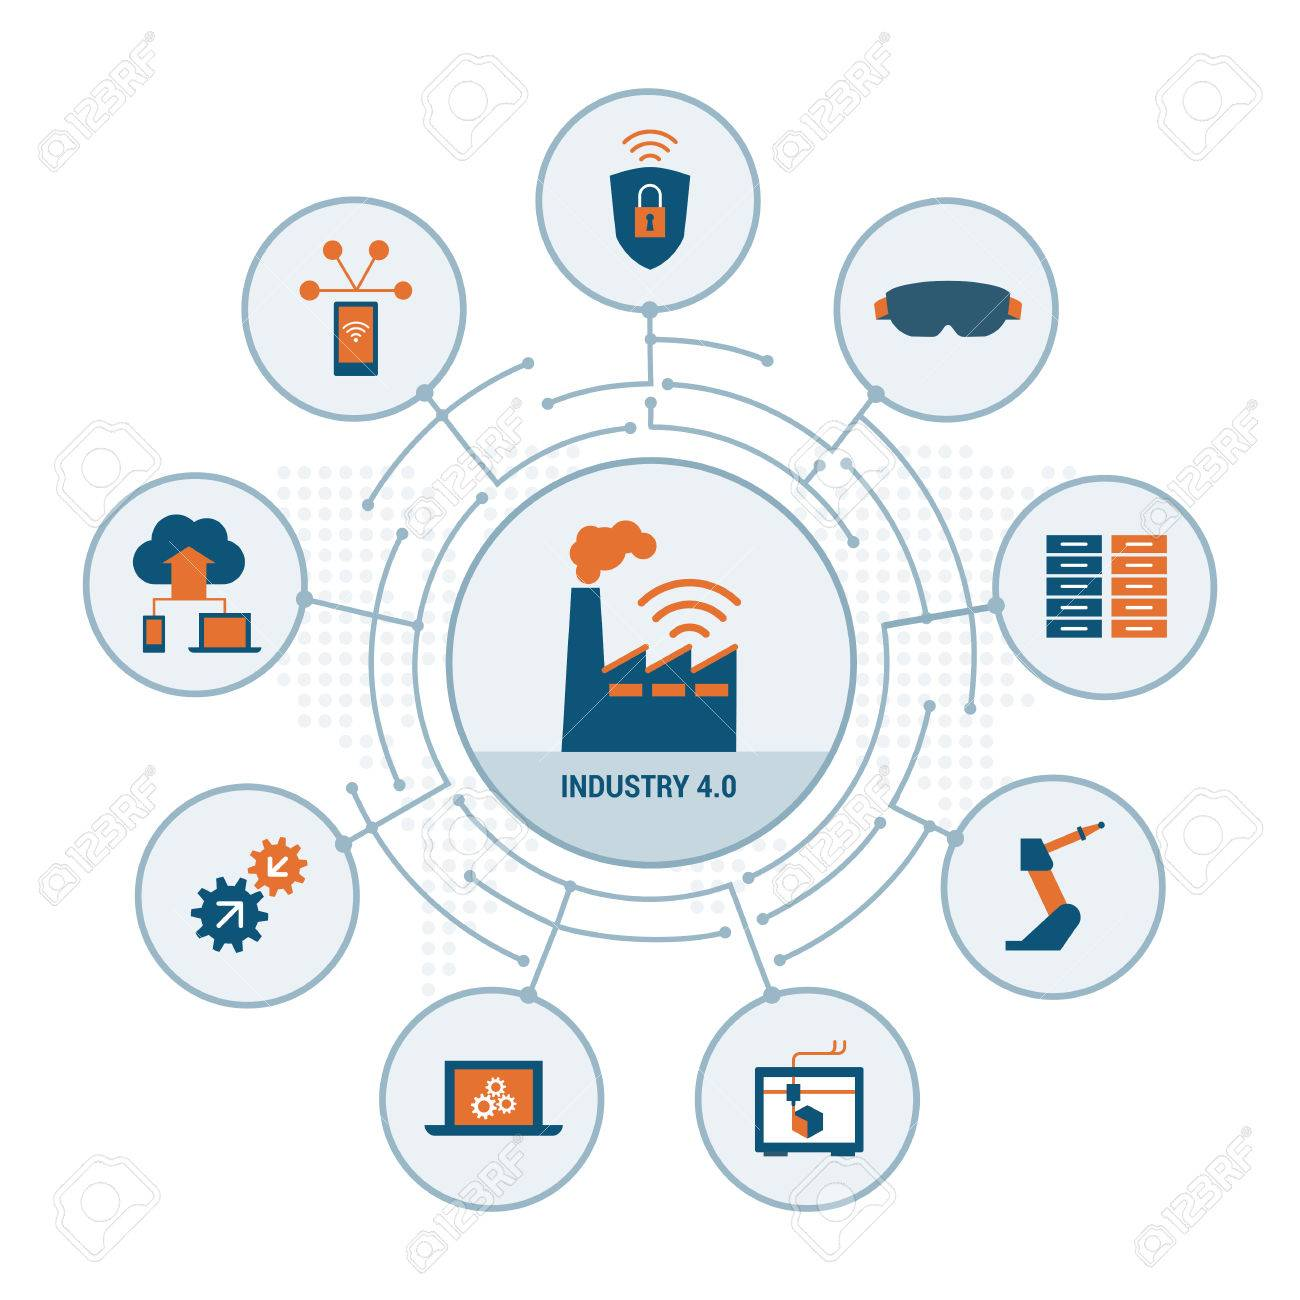 Industry 4.0 concepts: security, augmented reality, automation, internet of things and cloud computing - 67104346